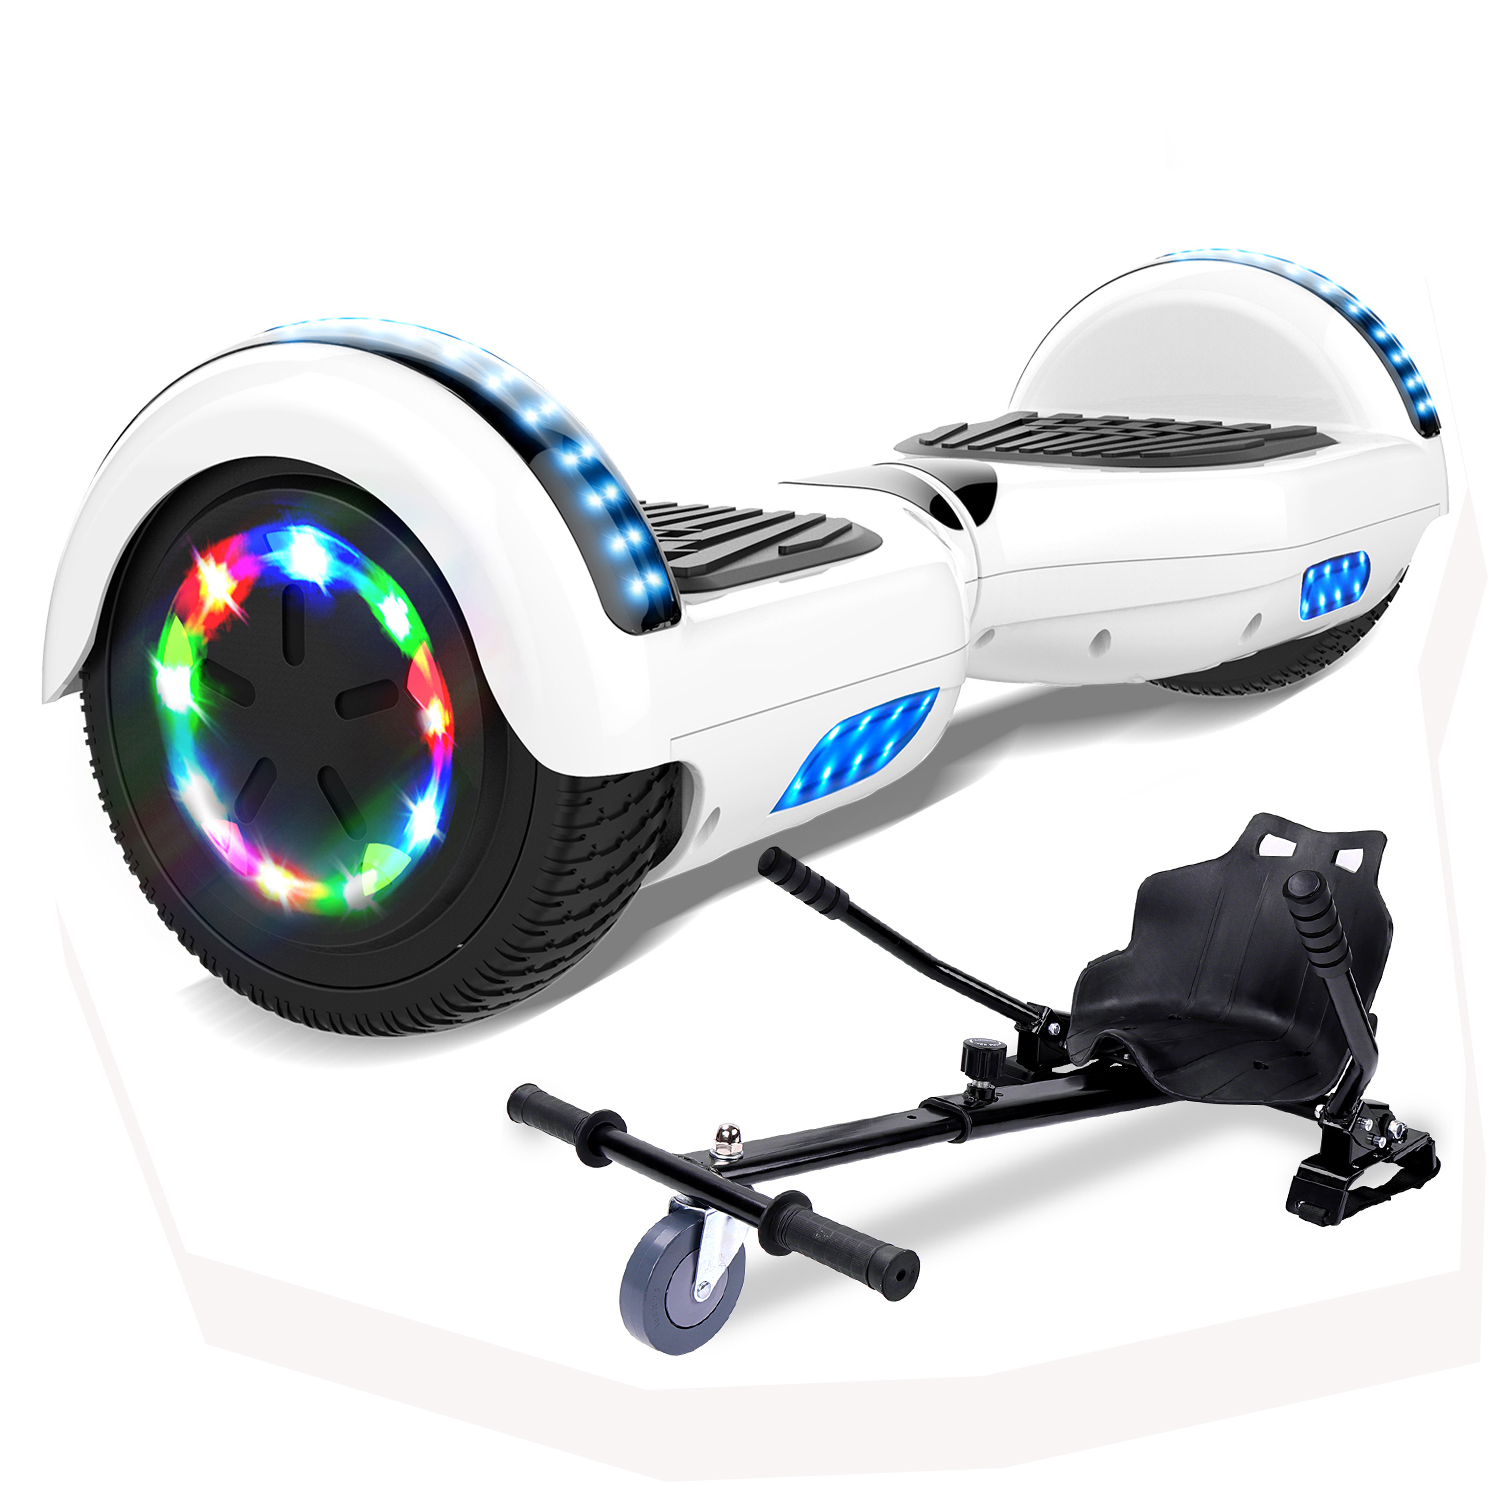 Mega Motion Self Balancing Scooter Hoverboard 6 5 With Hoverkart Led Lights Bluetooth Speaker Sale Price Reviews Gearbest Mobile